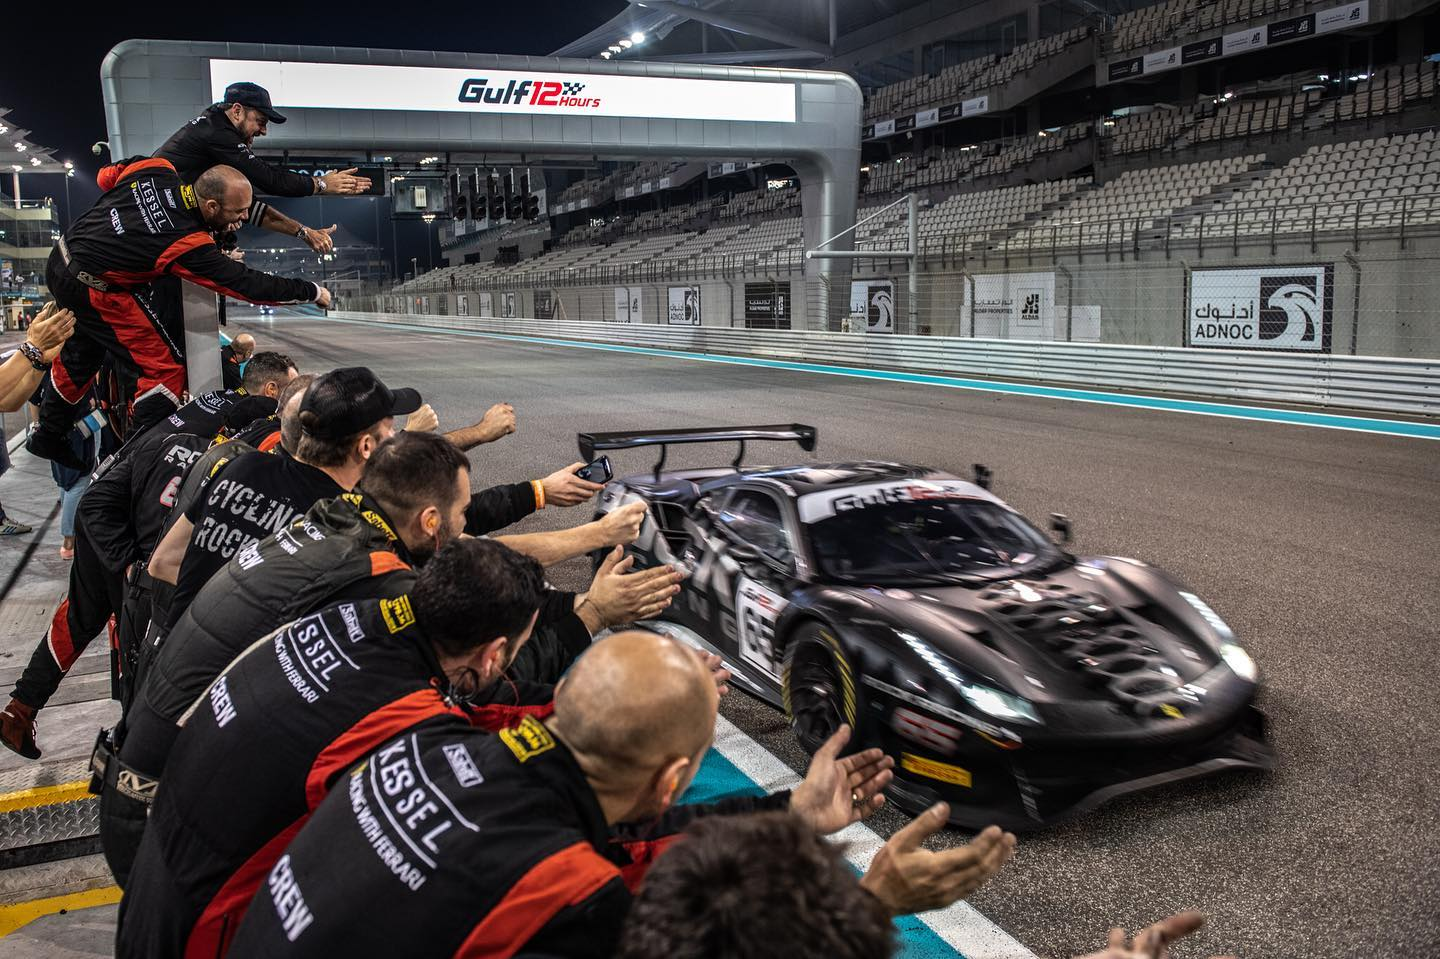 https://lnx.mirkone.it/wp-content/uploads/2019/12/mirk_One-abu-dhabi-rock-racing-13.jpg